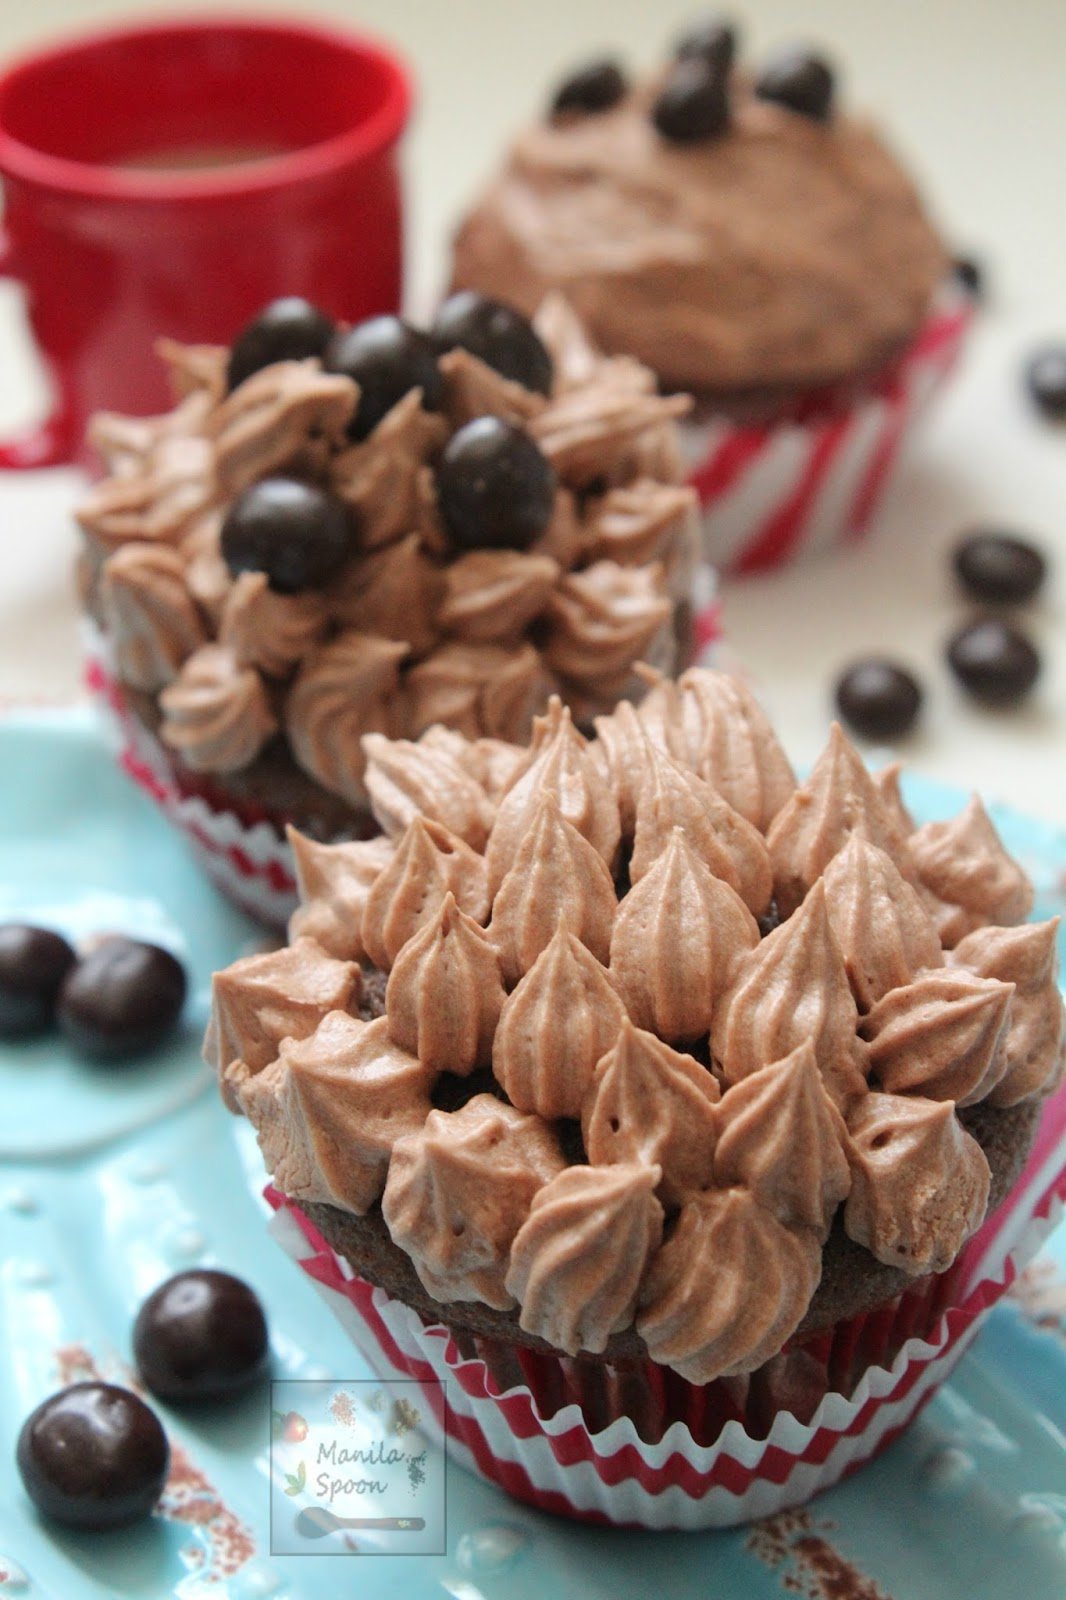 A delicious burst of coffee goodness in every bite of these Chocolate Cappuccino Cupcakes with a luscious espresso-flavored buttercream frosting! Perfect pair with your morning coffee!